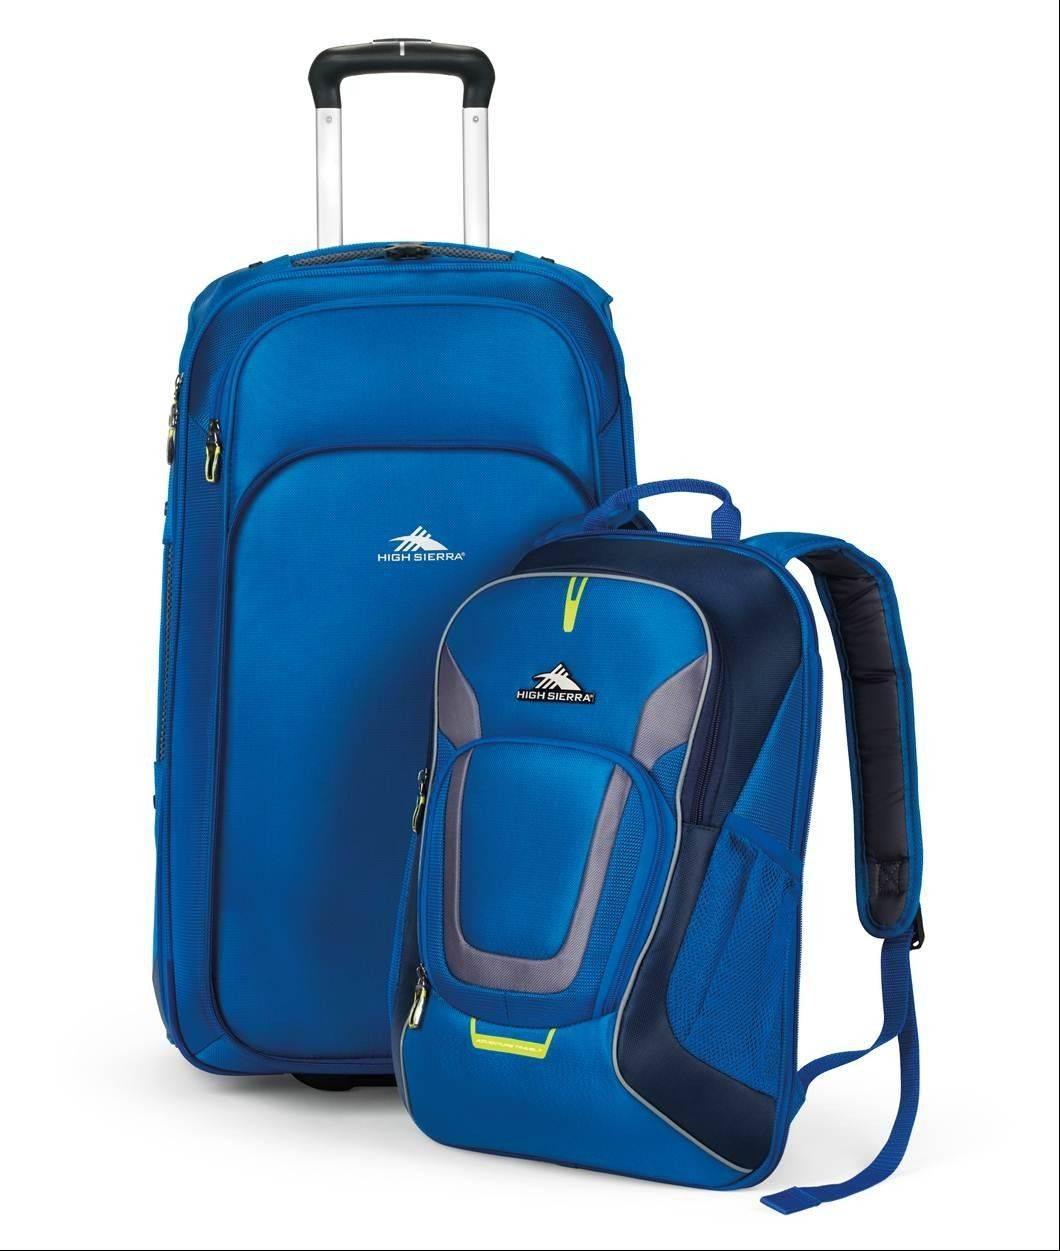 The High Sierra AT7 wheeled backpack with detachable daypack can work well for kids and teens who need carry-on luggage.